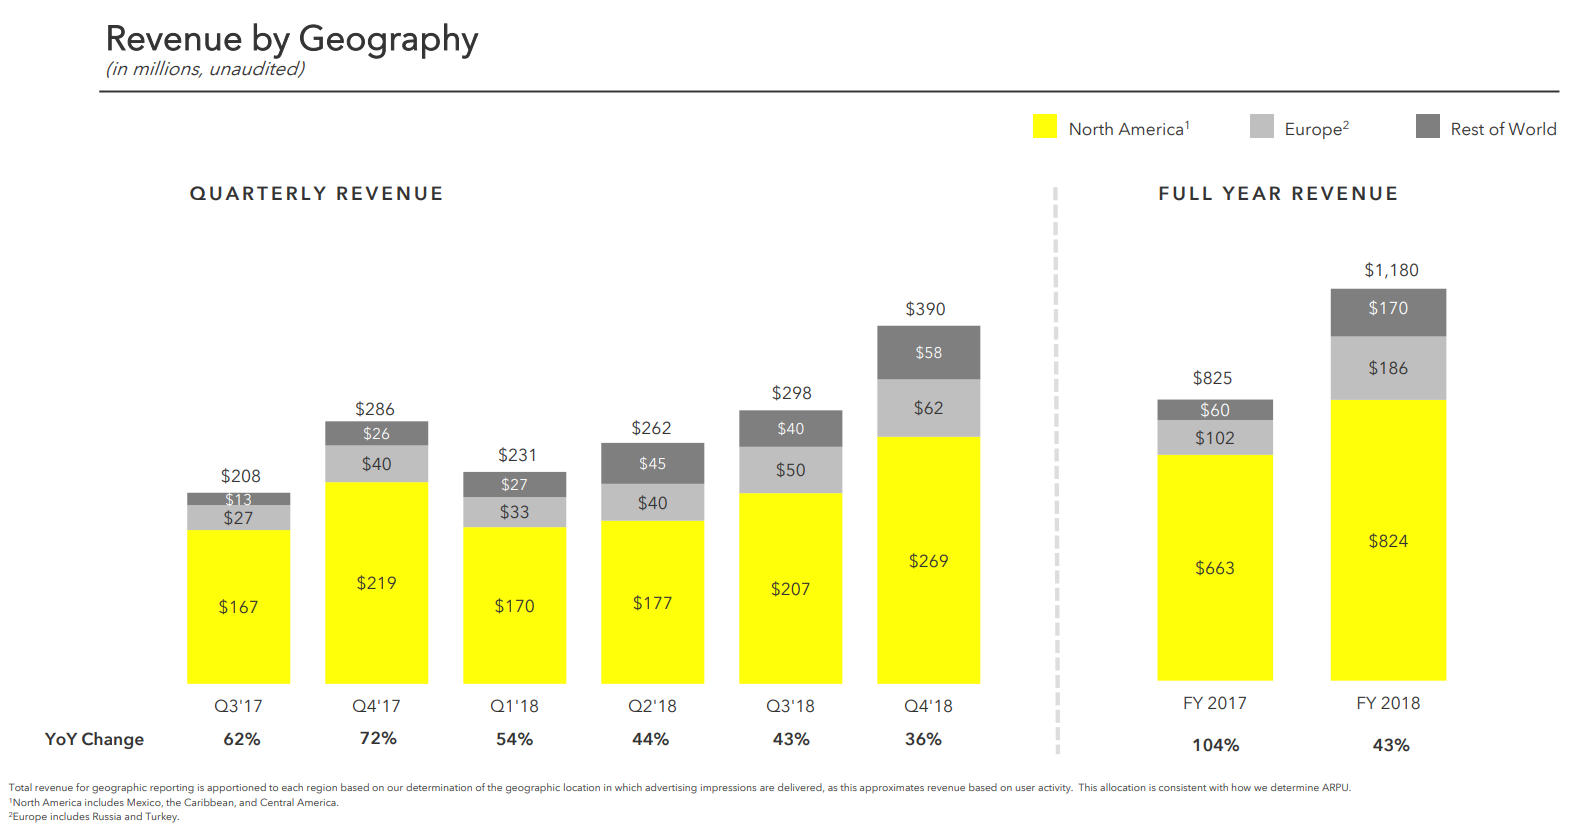 Snap Q4 2018 results